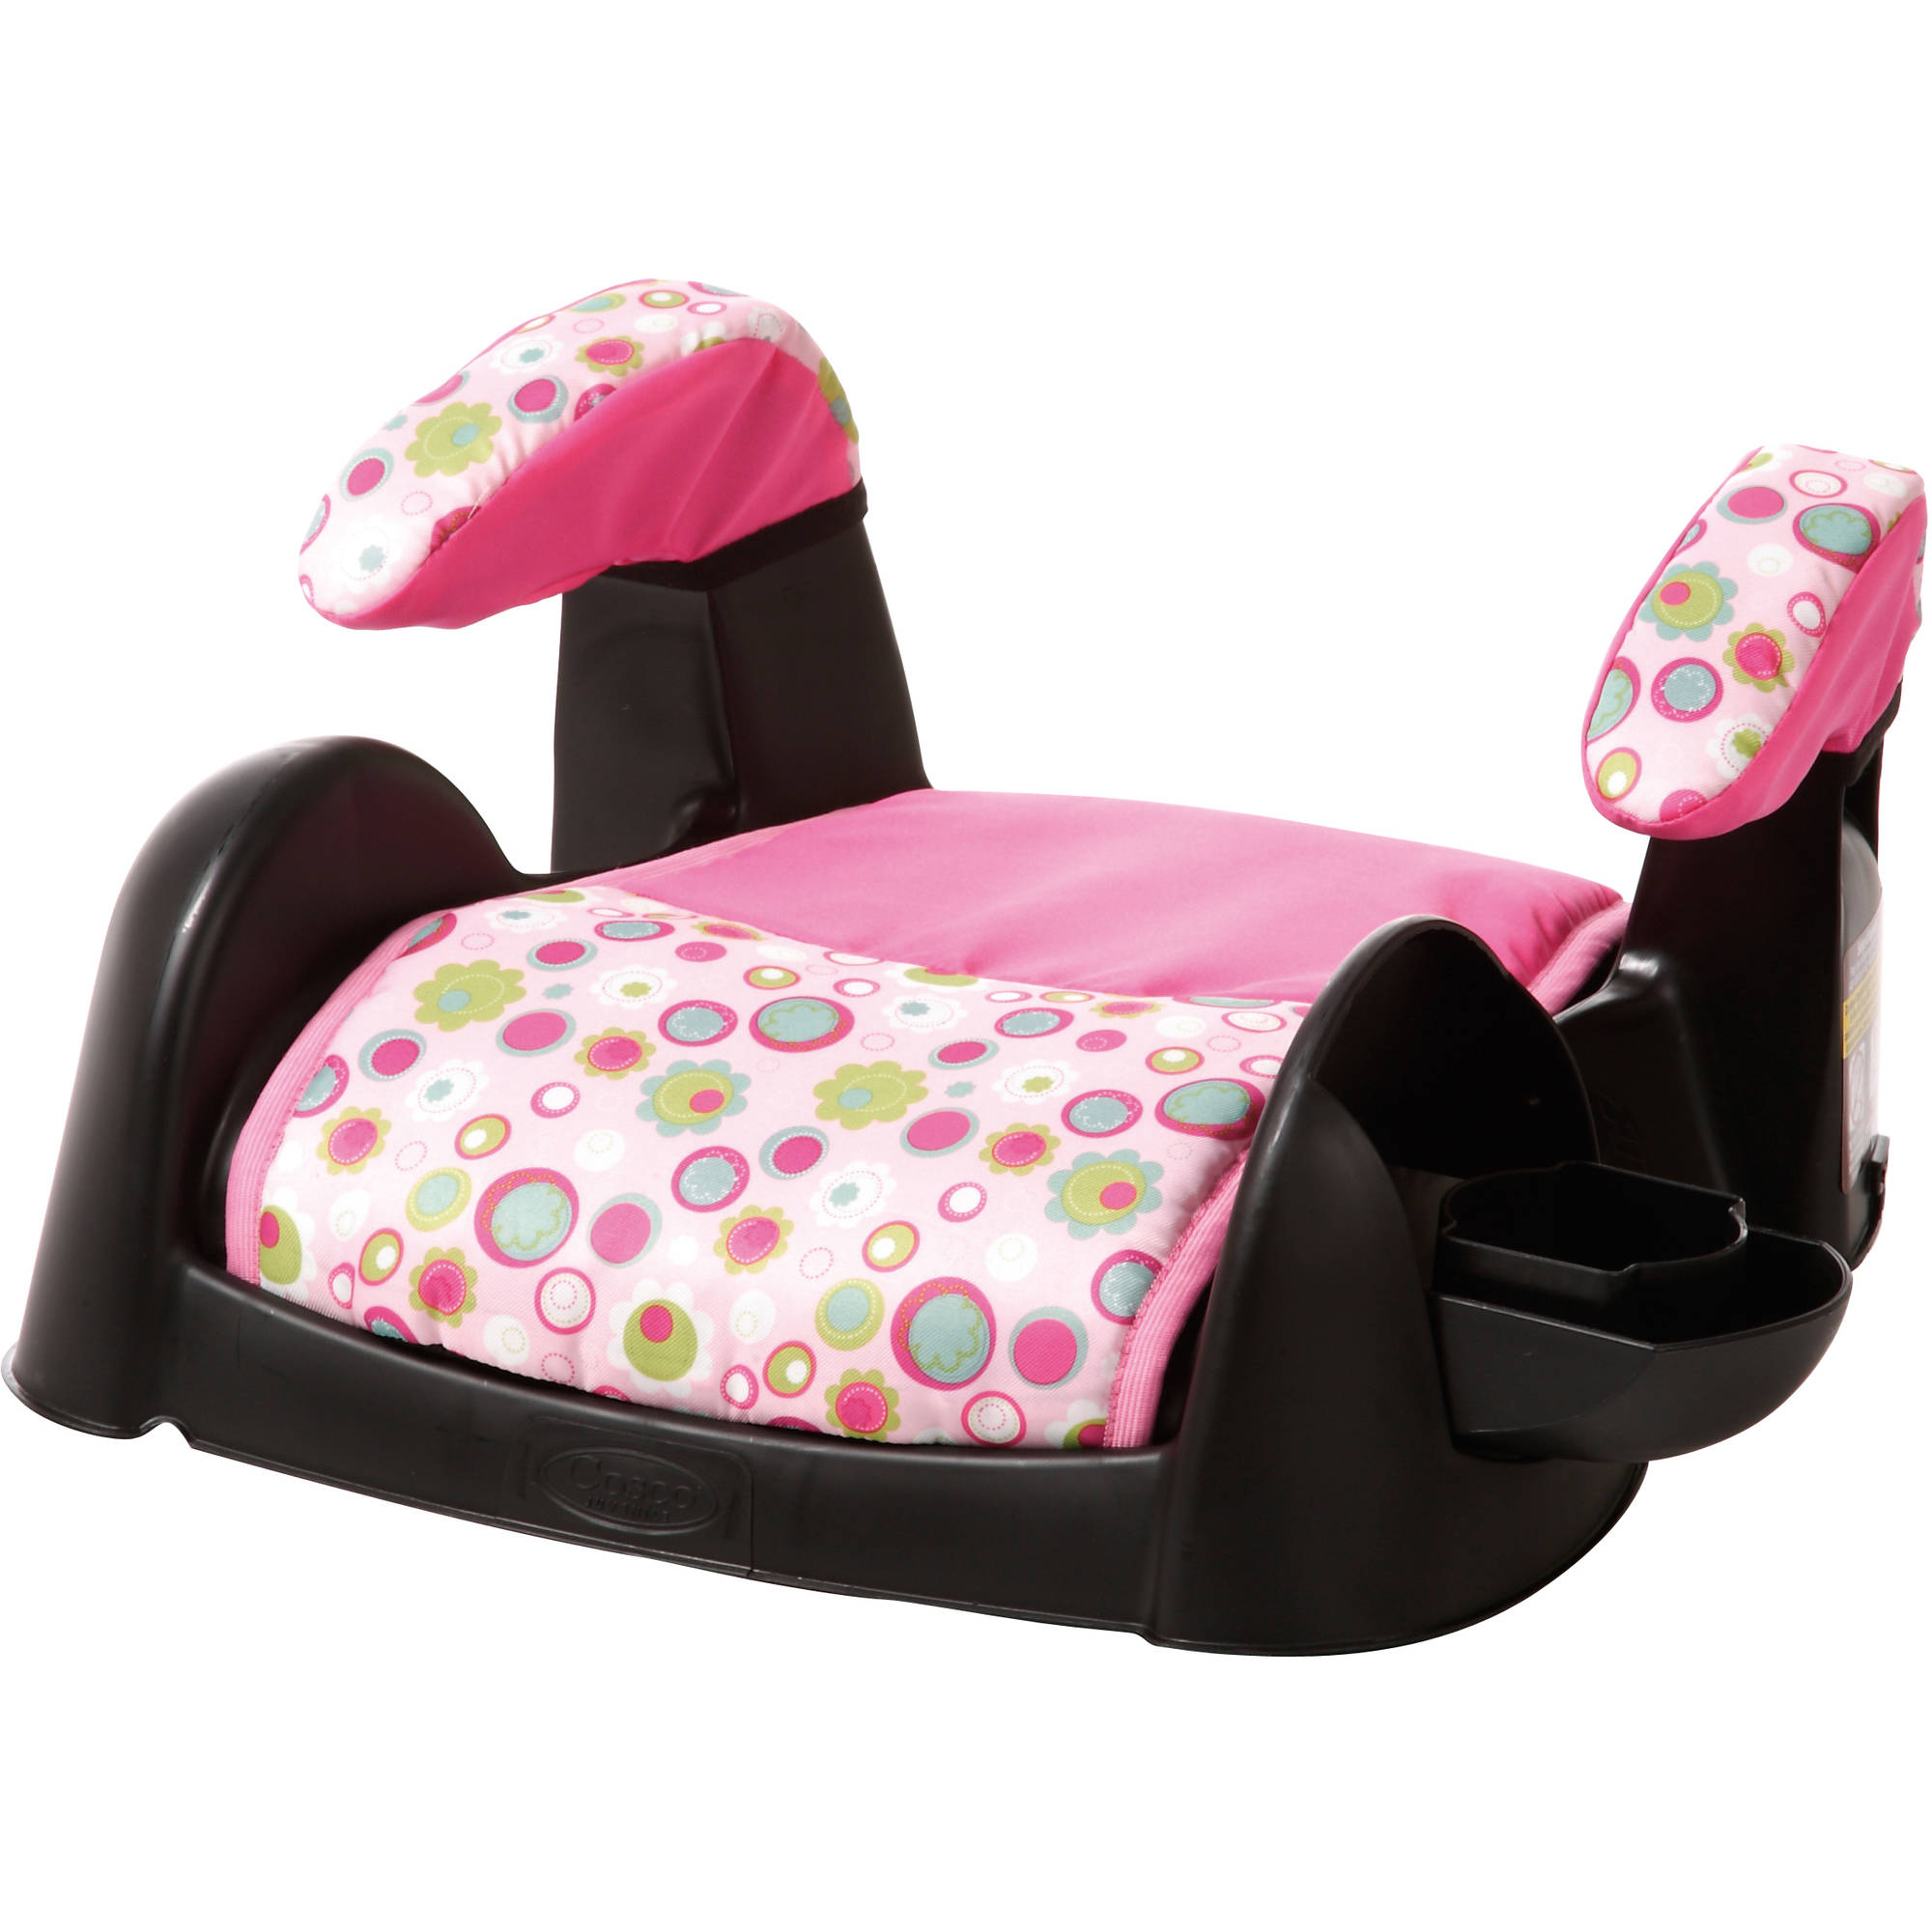 Cosco - Ambassador Booster Car Seat, Magical Moonlight